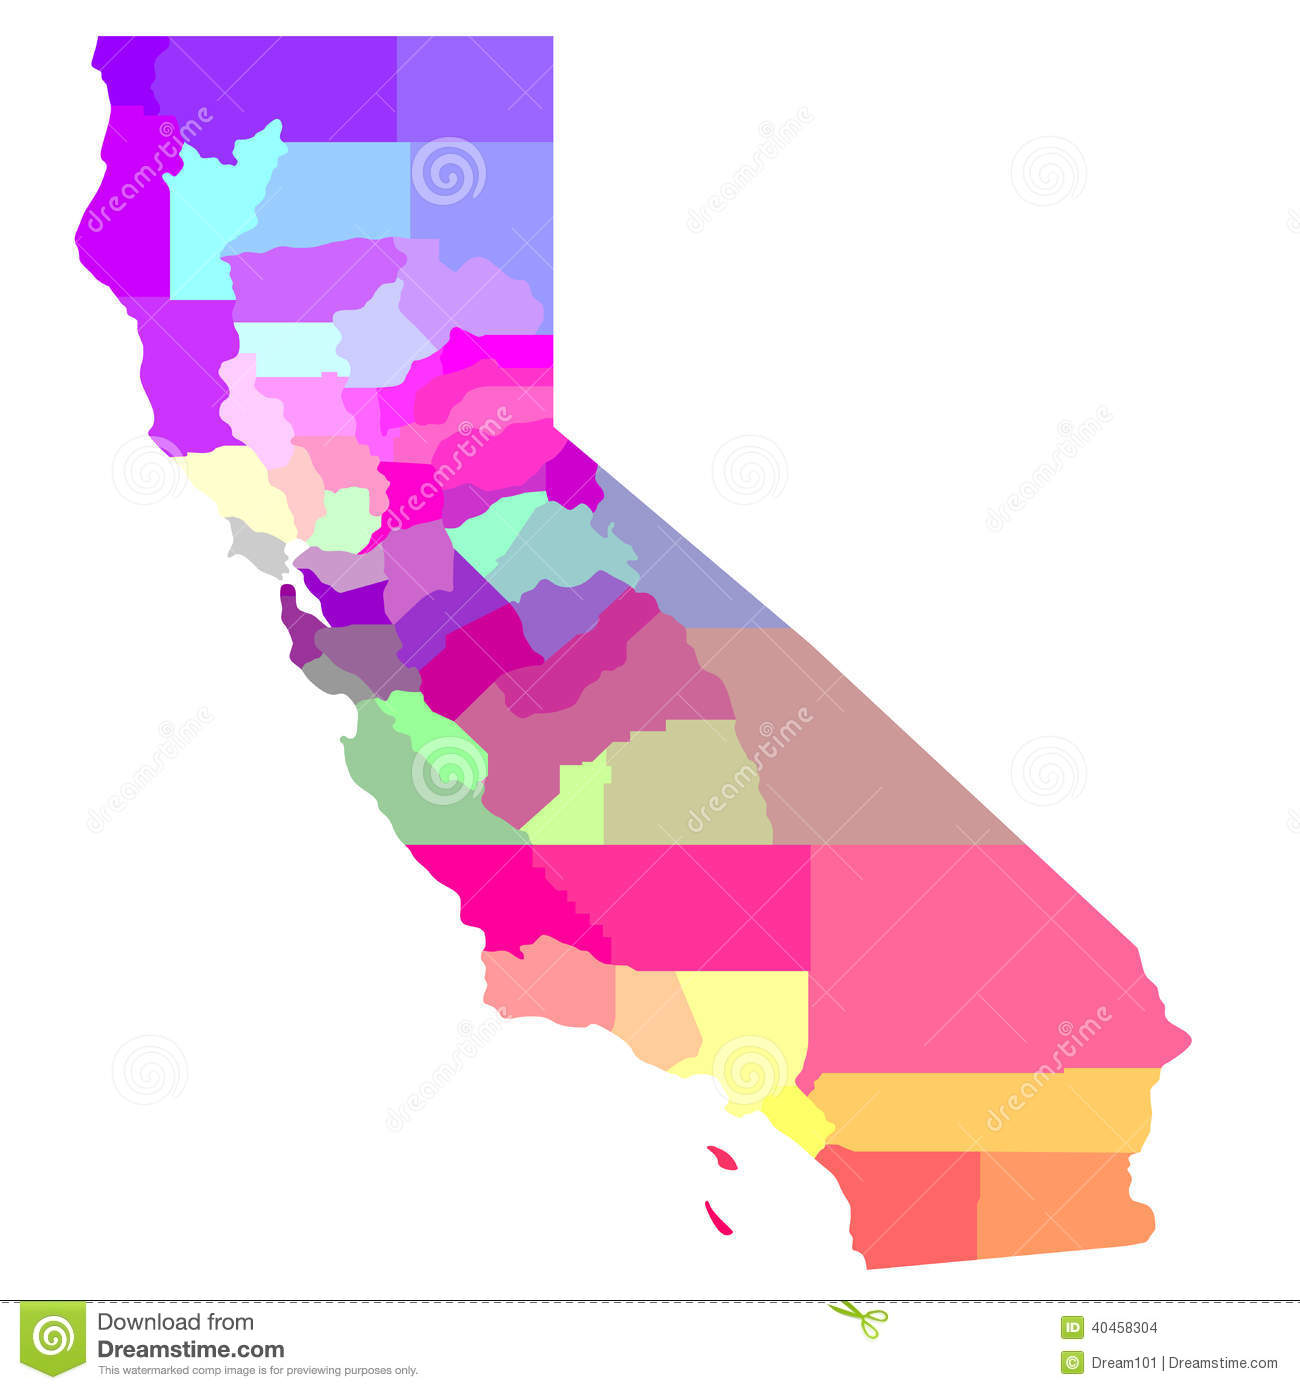 California map clipart picture black and white library California Map Royalty Free Stock Images - Image: 10324889 picture black and white library